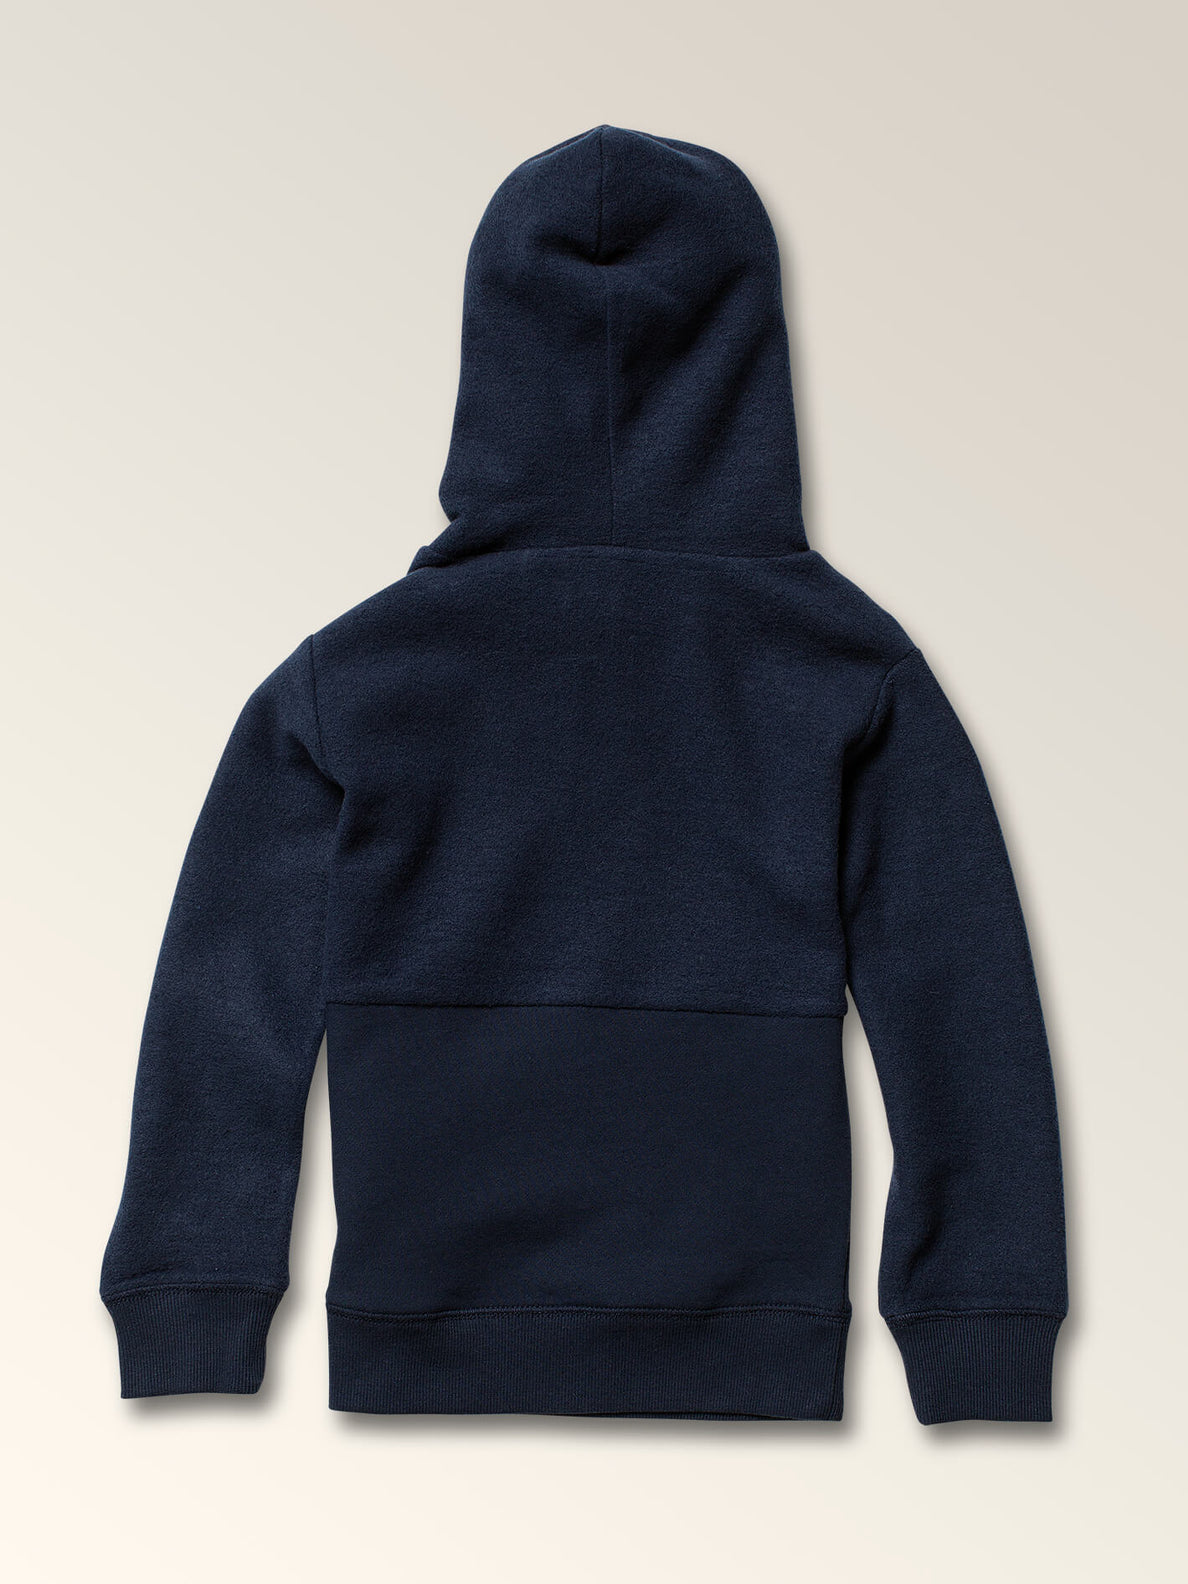 Little Boys Single Stone Sub Division Pullover Hoodie In Melindigo, Back View